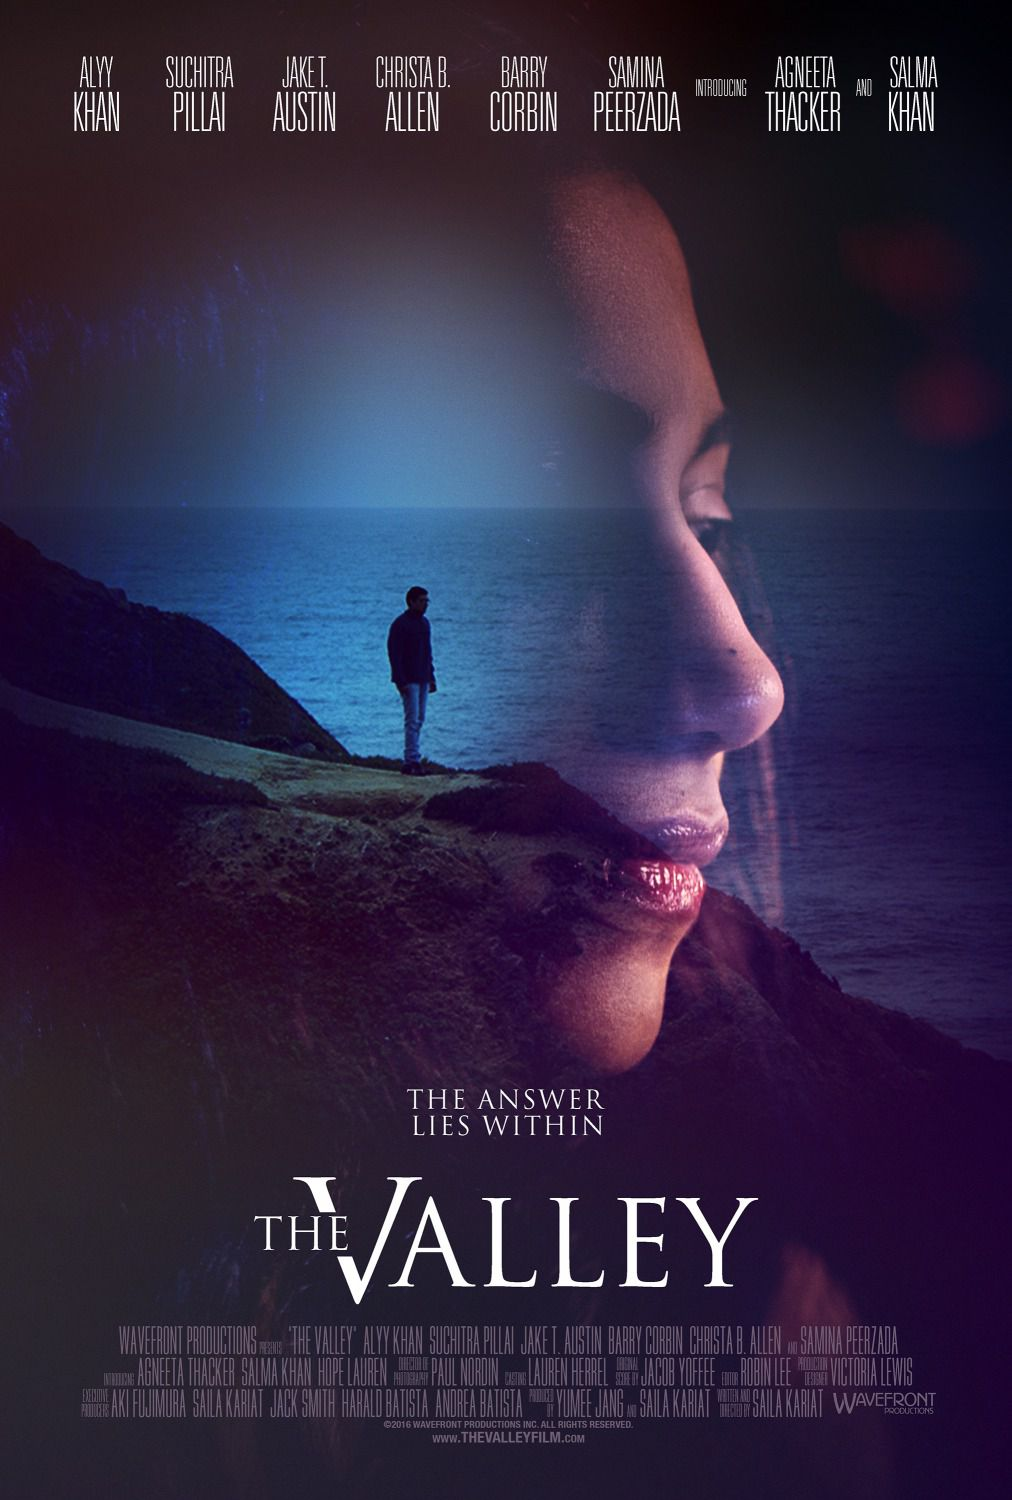 The Valley - The answer lies within - Alyy Khan - Suchitra Pillai - Jake T. Austin - Christa B. Allen - Barry Corbin - Samma Peerzada - Agneeta Thacker - Salma Khan - film poster